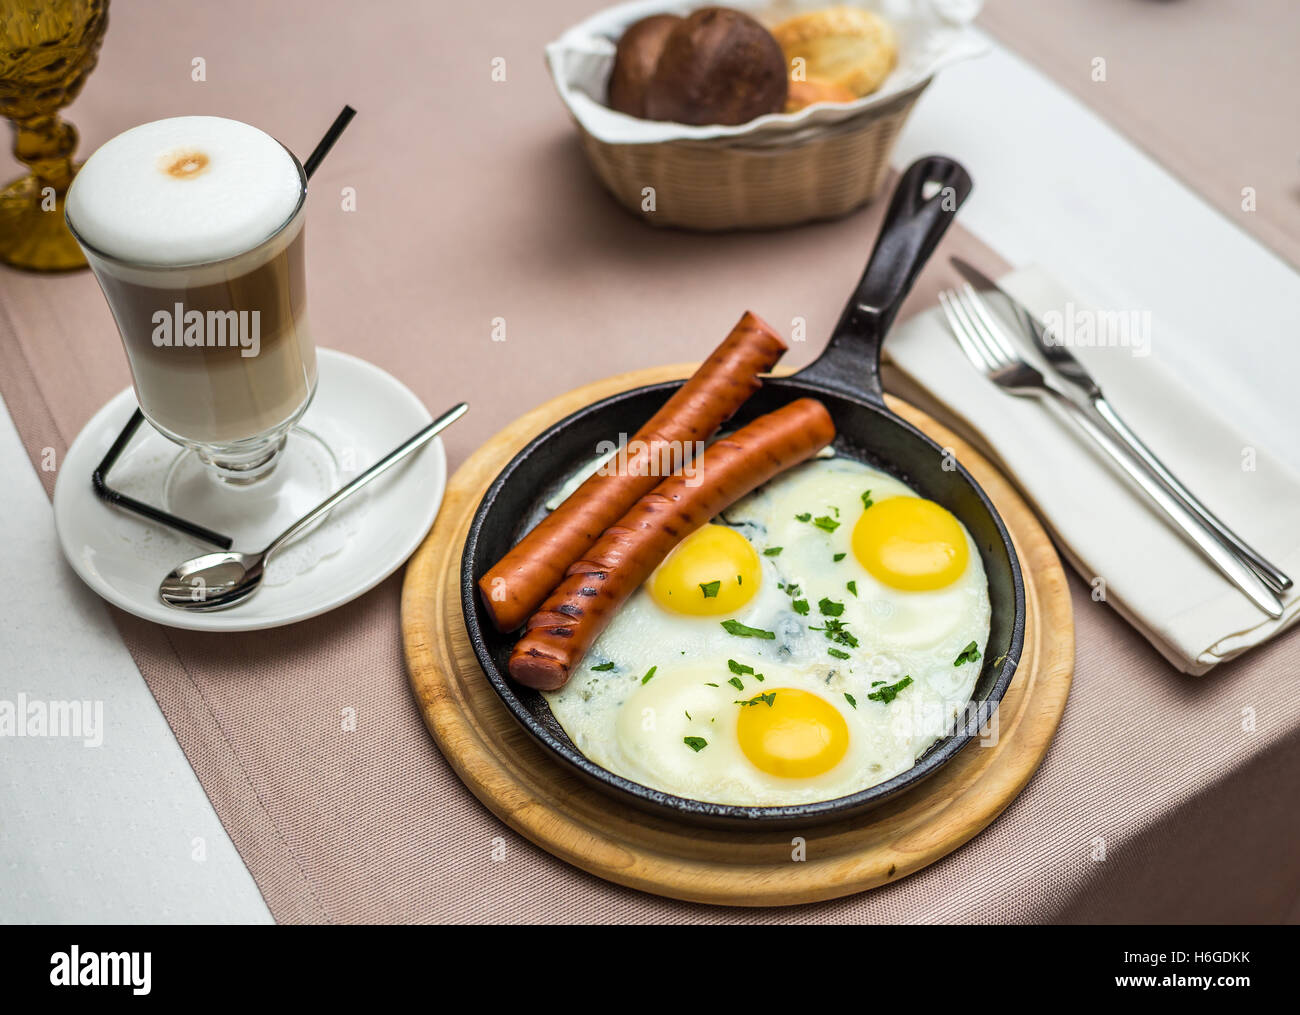 scrambled eggs with sausages - Stock Image